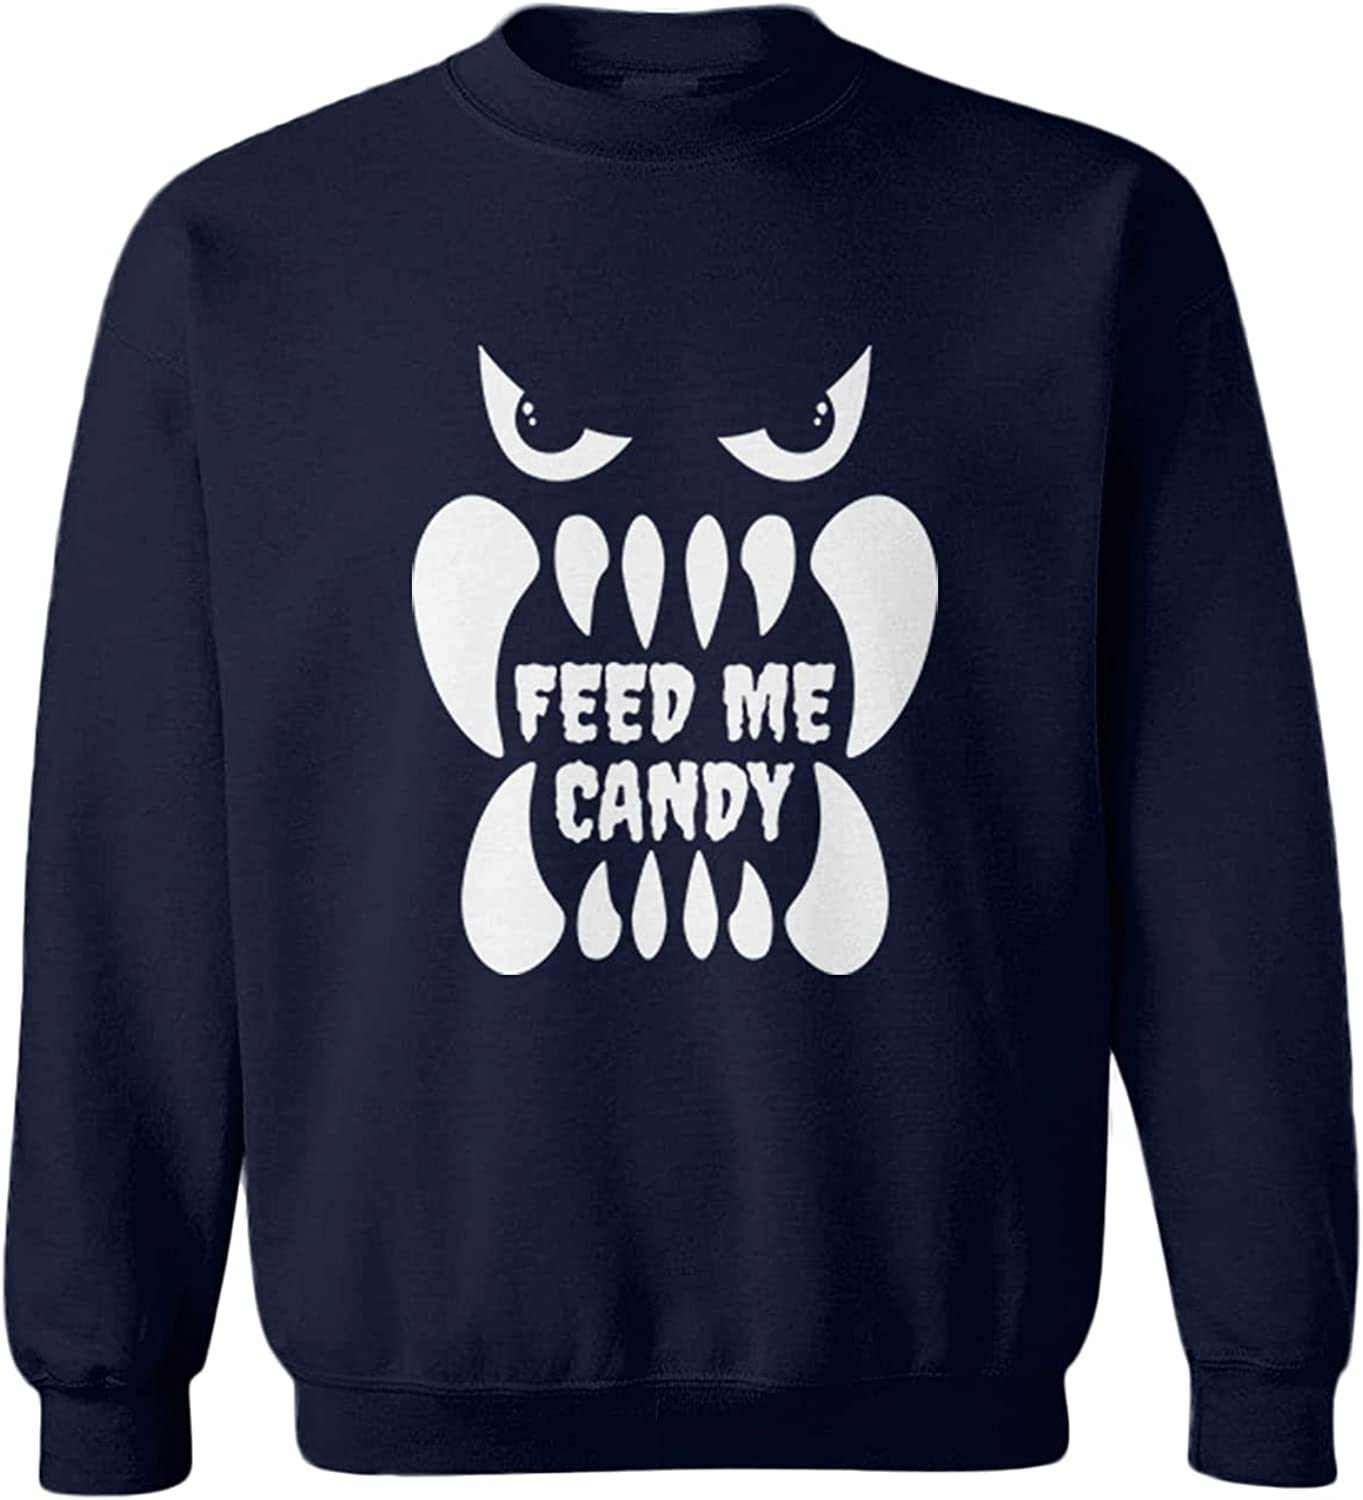 Feed Me Candy Outlet sale feature Some reservation - Trick Or Monster Toddler Fleece Crewneck S Treat